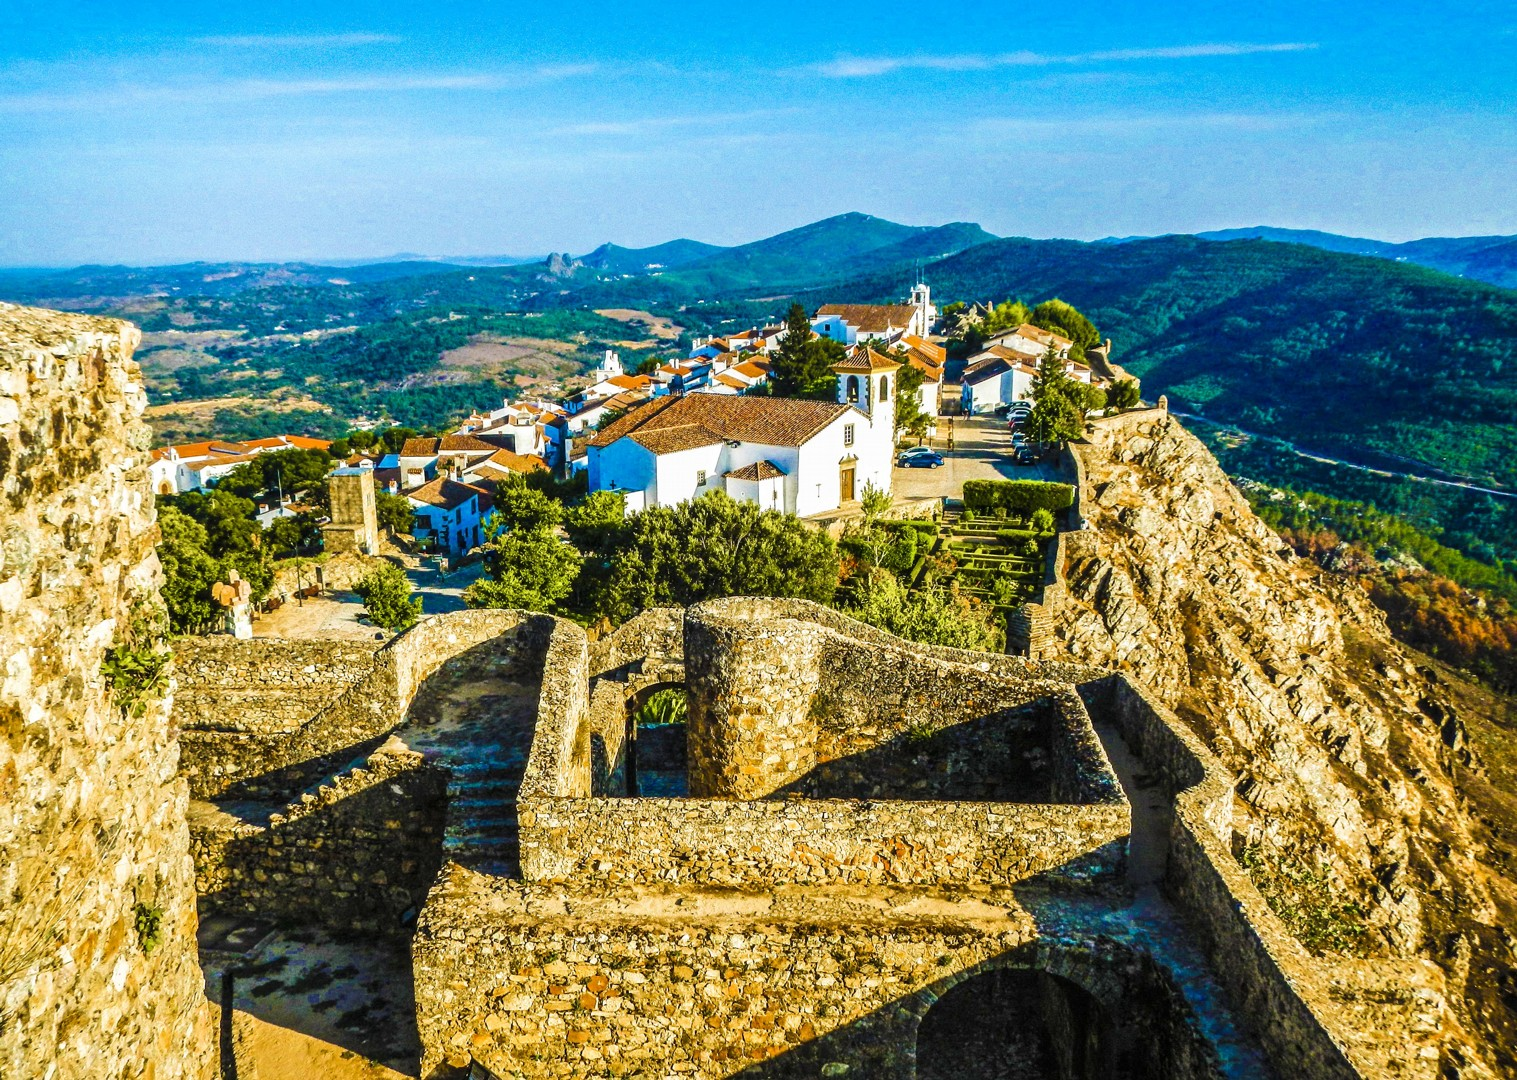 pousada-stay-in-mountain-top-villages-special-accommodation-portugal-cycling-tour.jpg - Portugal - Historic Villages - Self-Guided Leisure Cycling Holiday - Leisure Cycling